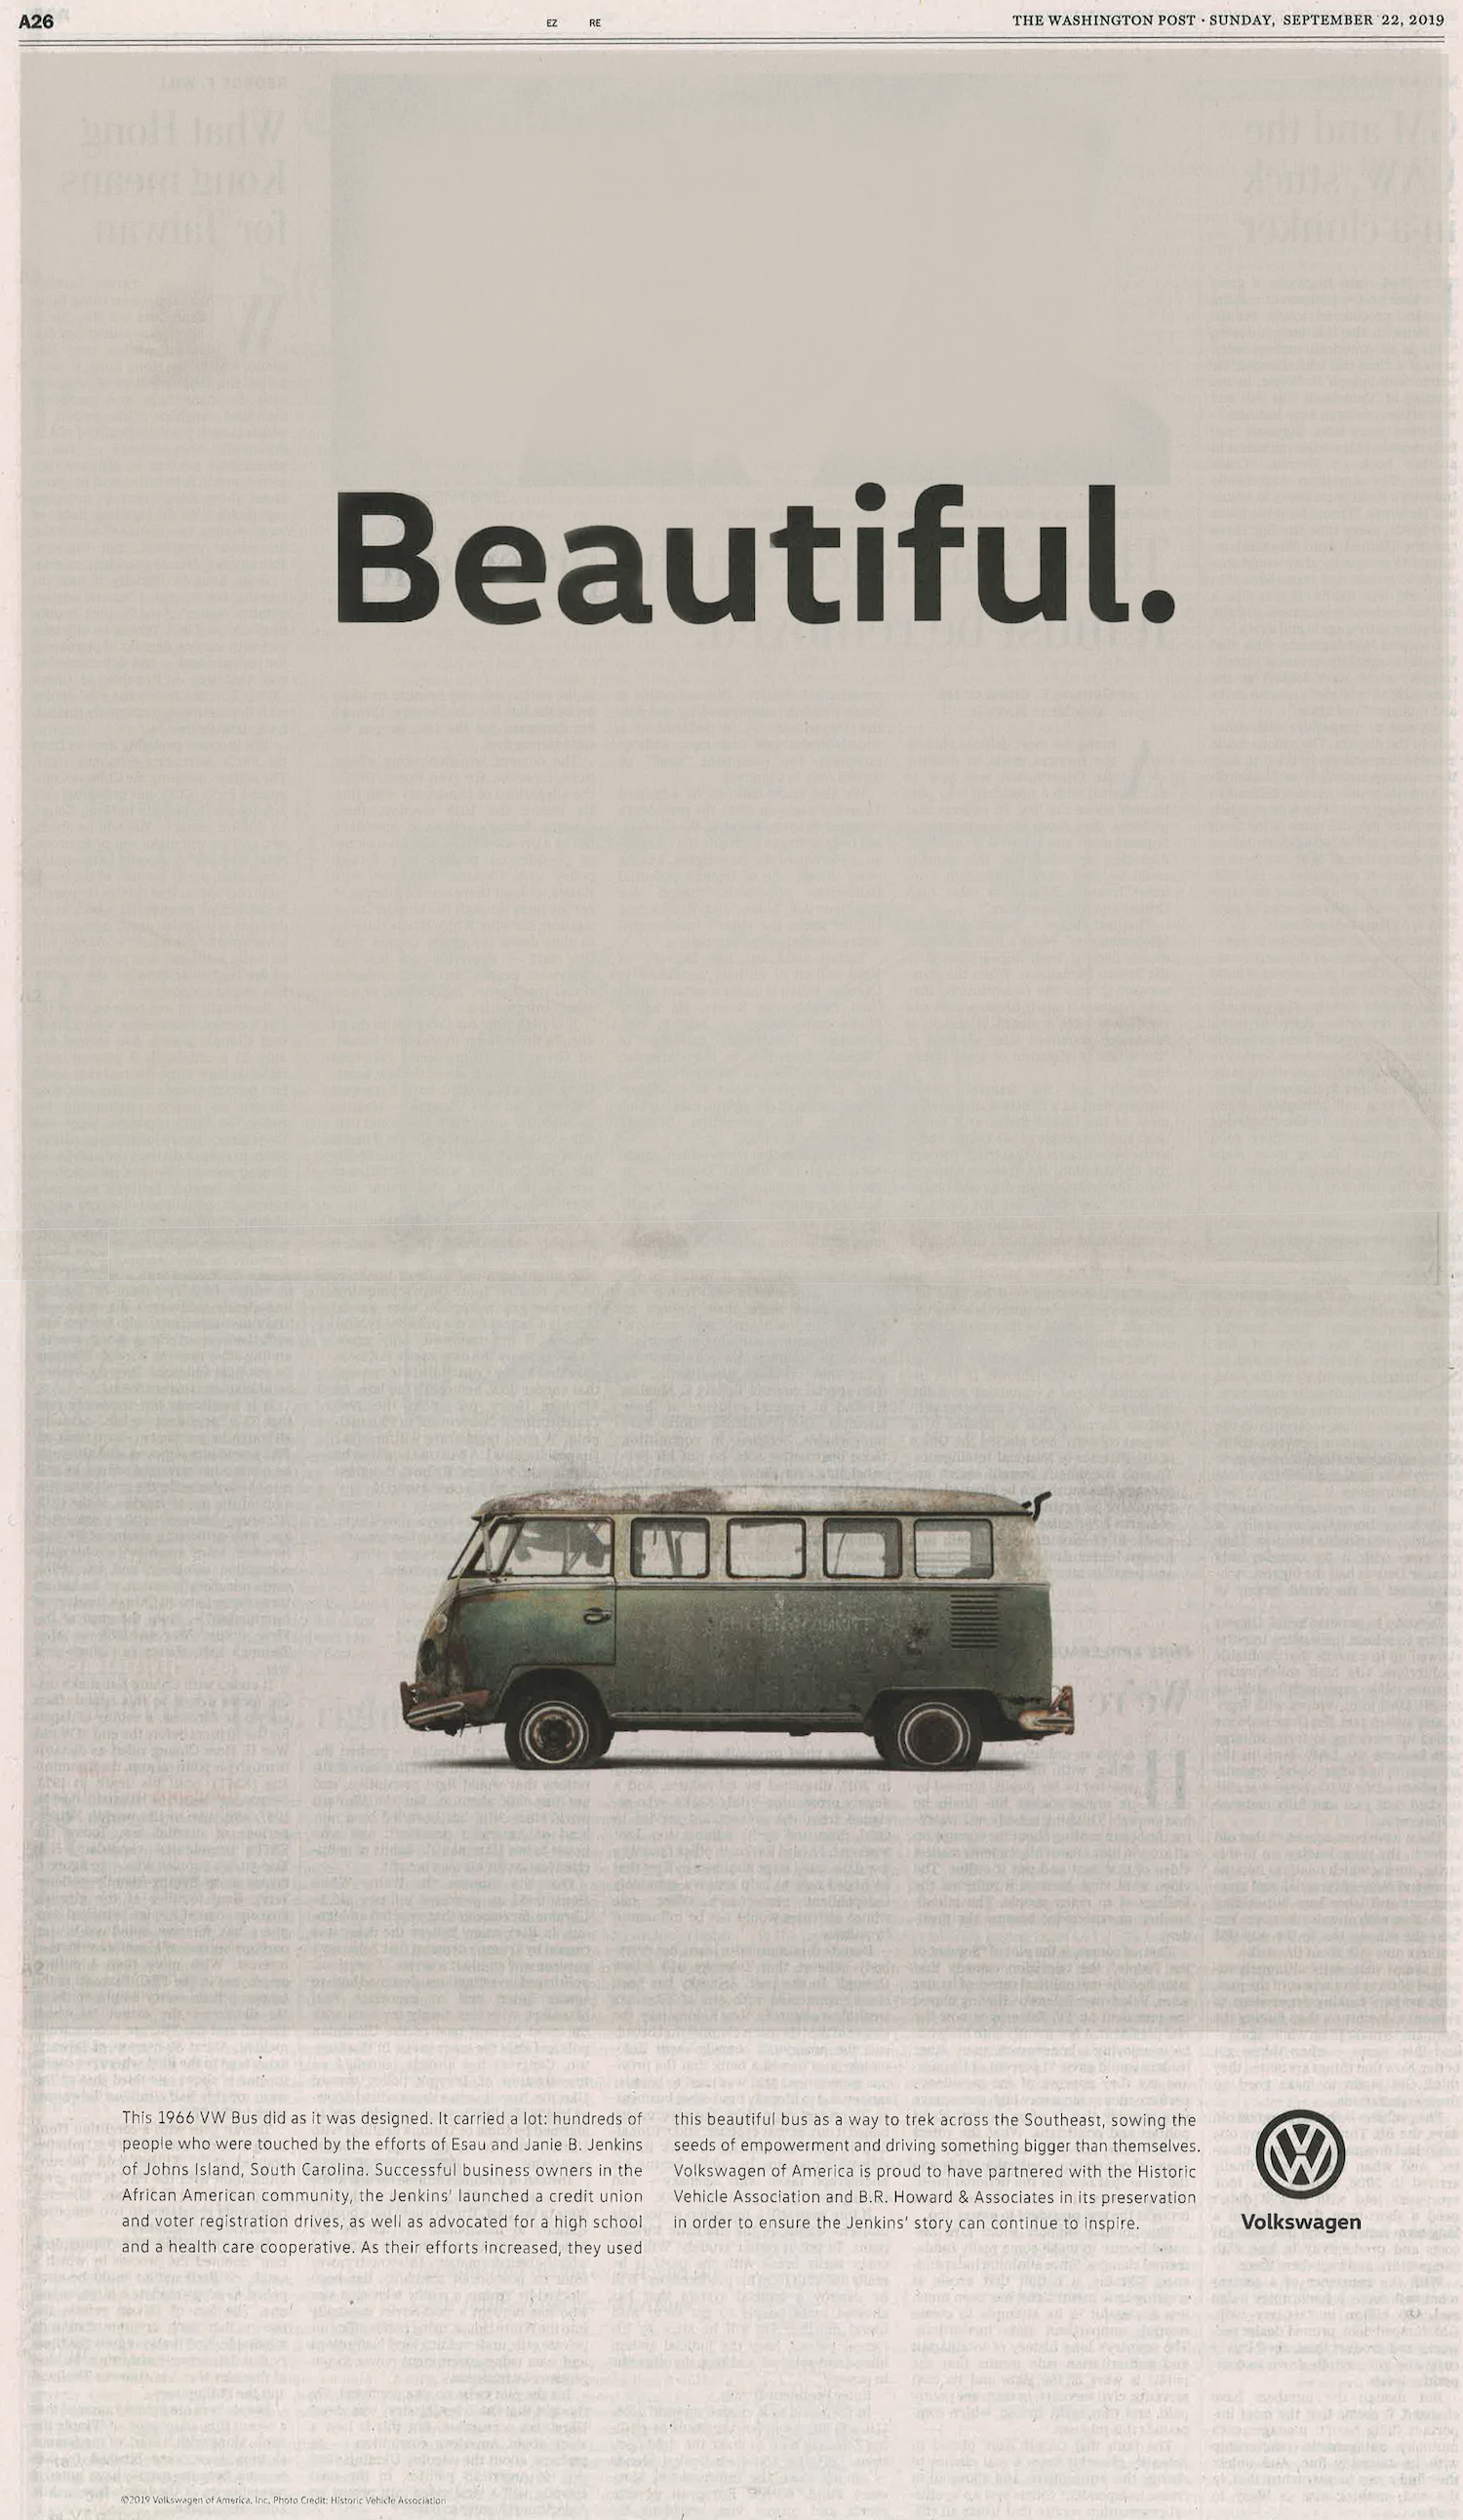 Volkswagen Ad Campaign Post Article